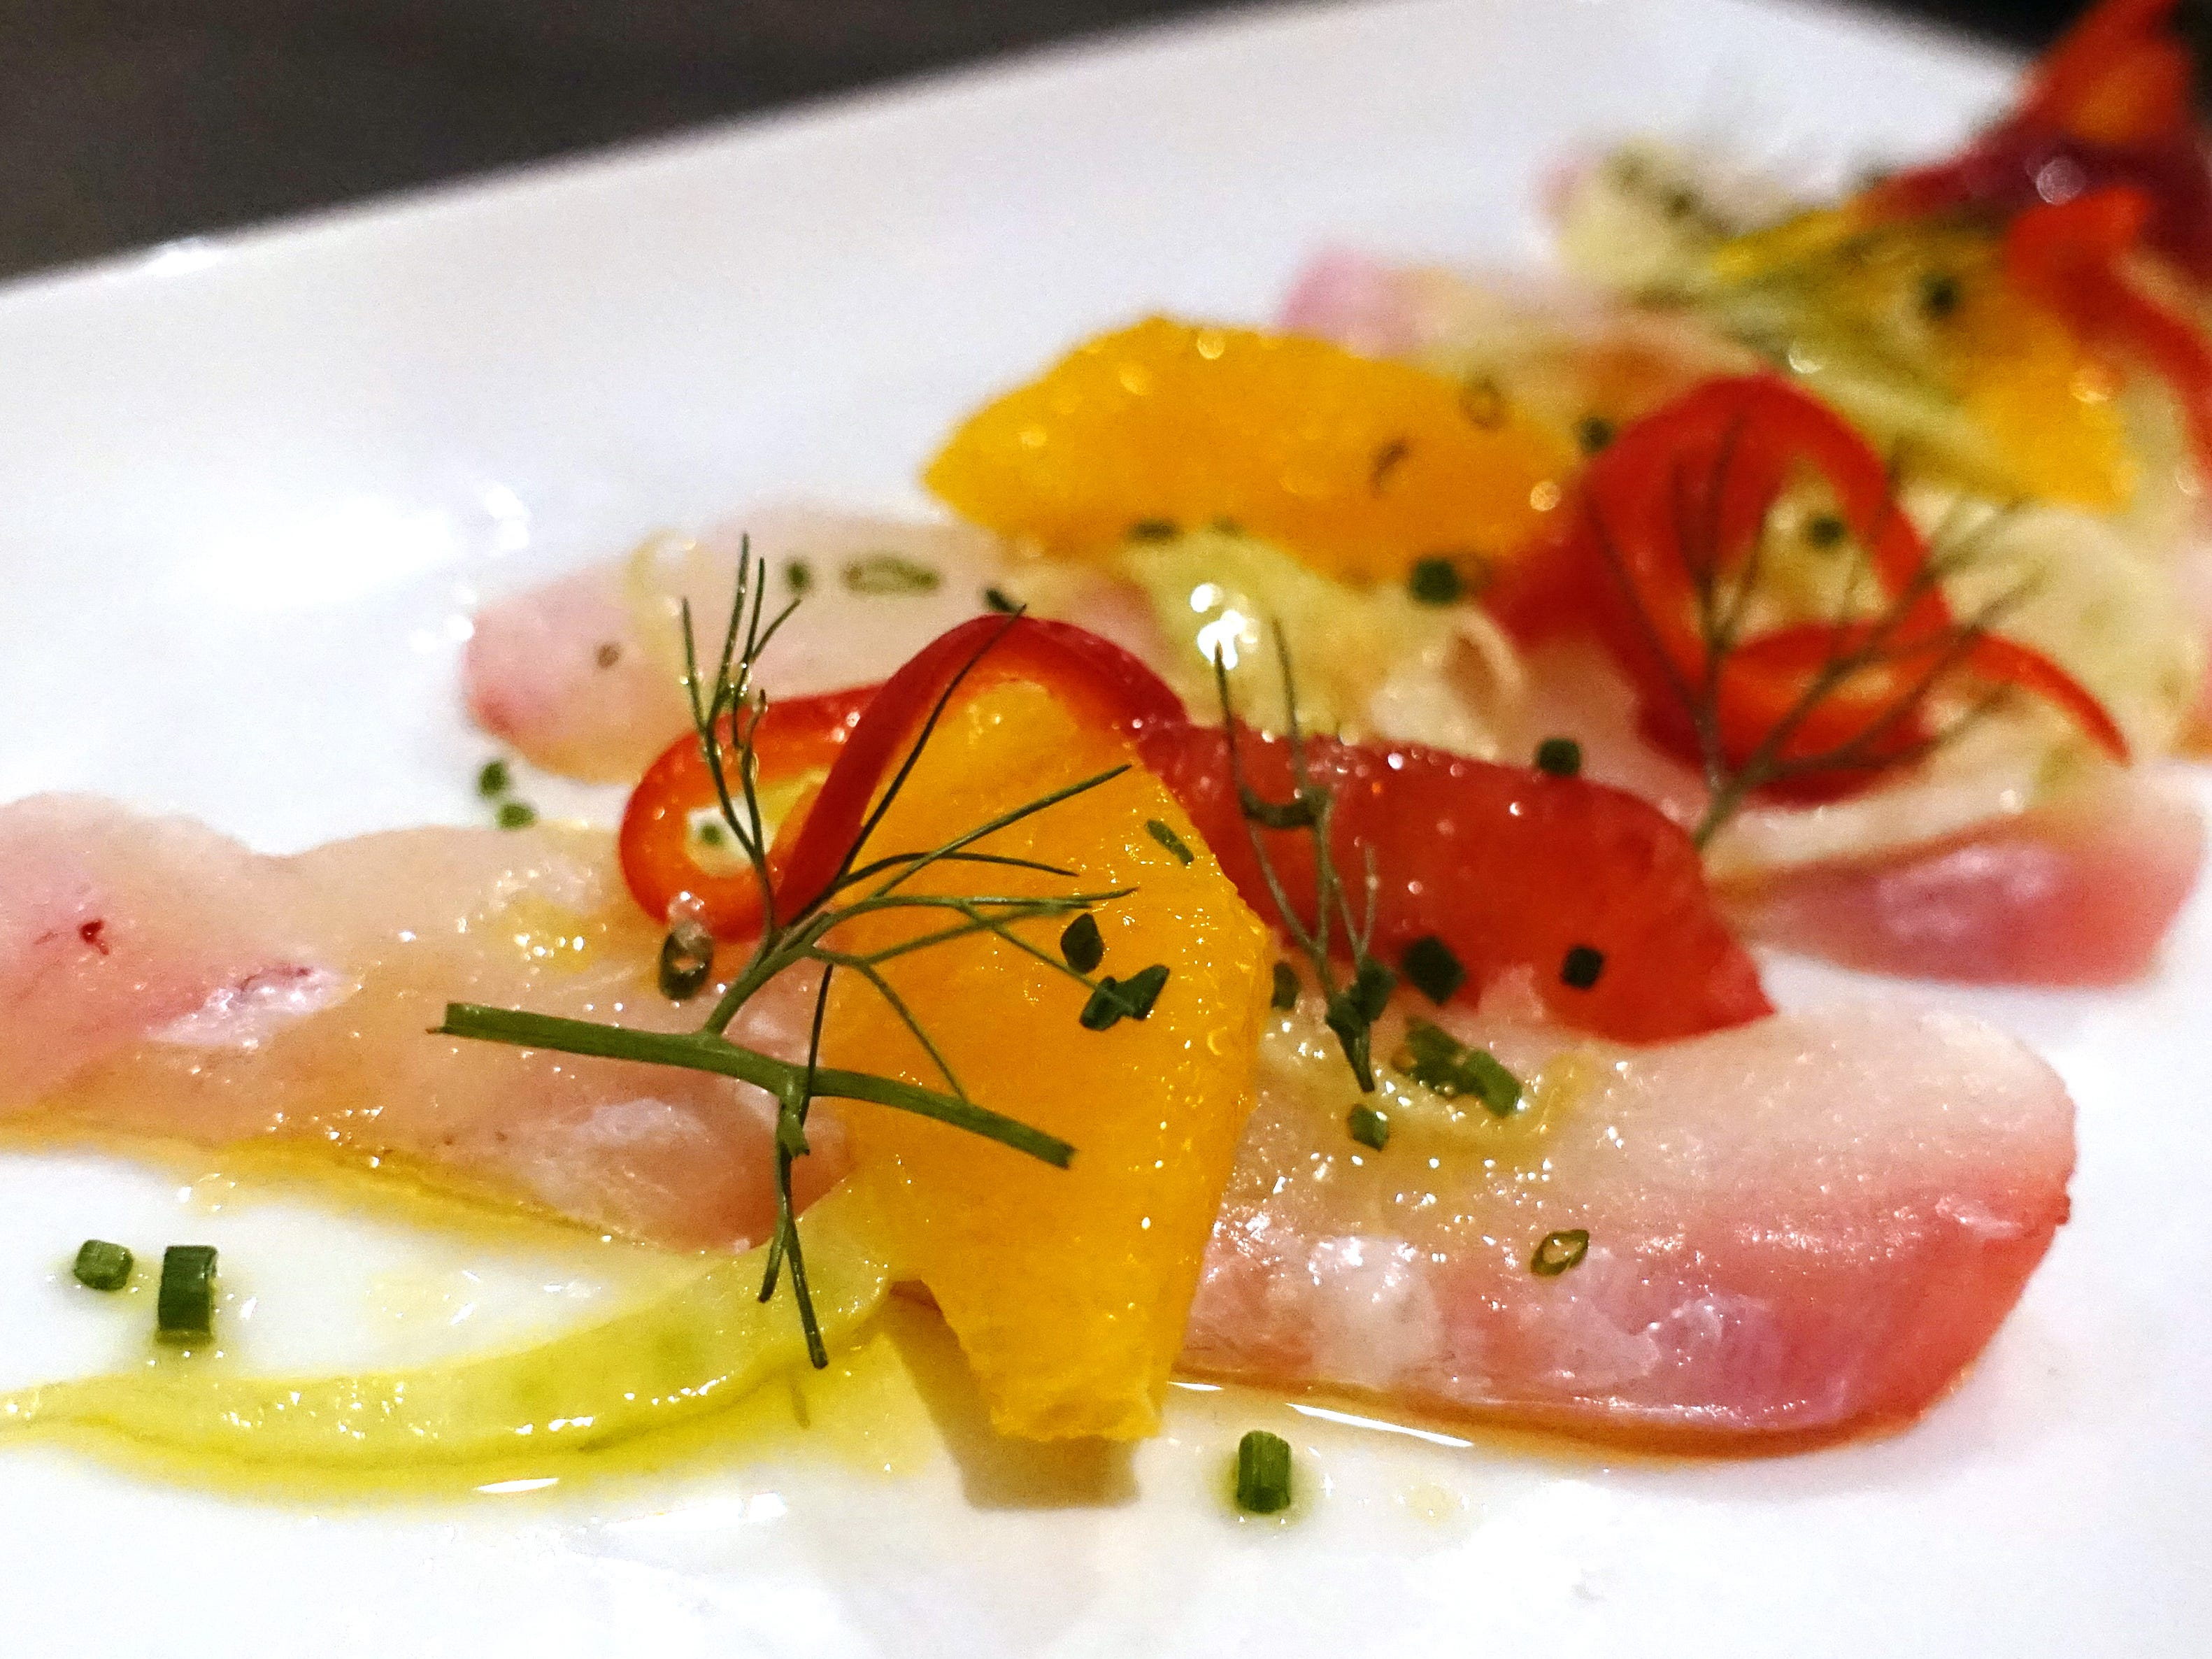 Halibut crudo with local citrus, pickled chiles and marinated fennel at Hush Public House in Scottsdale.